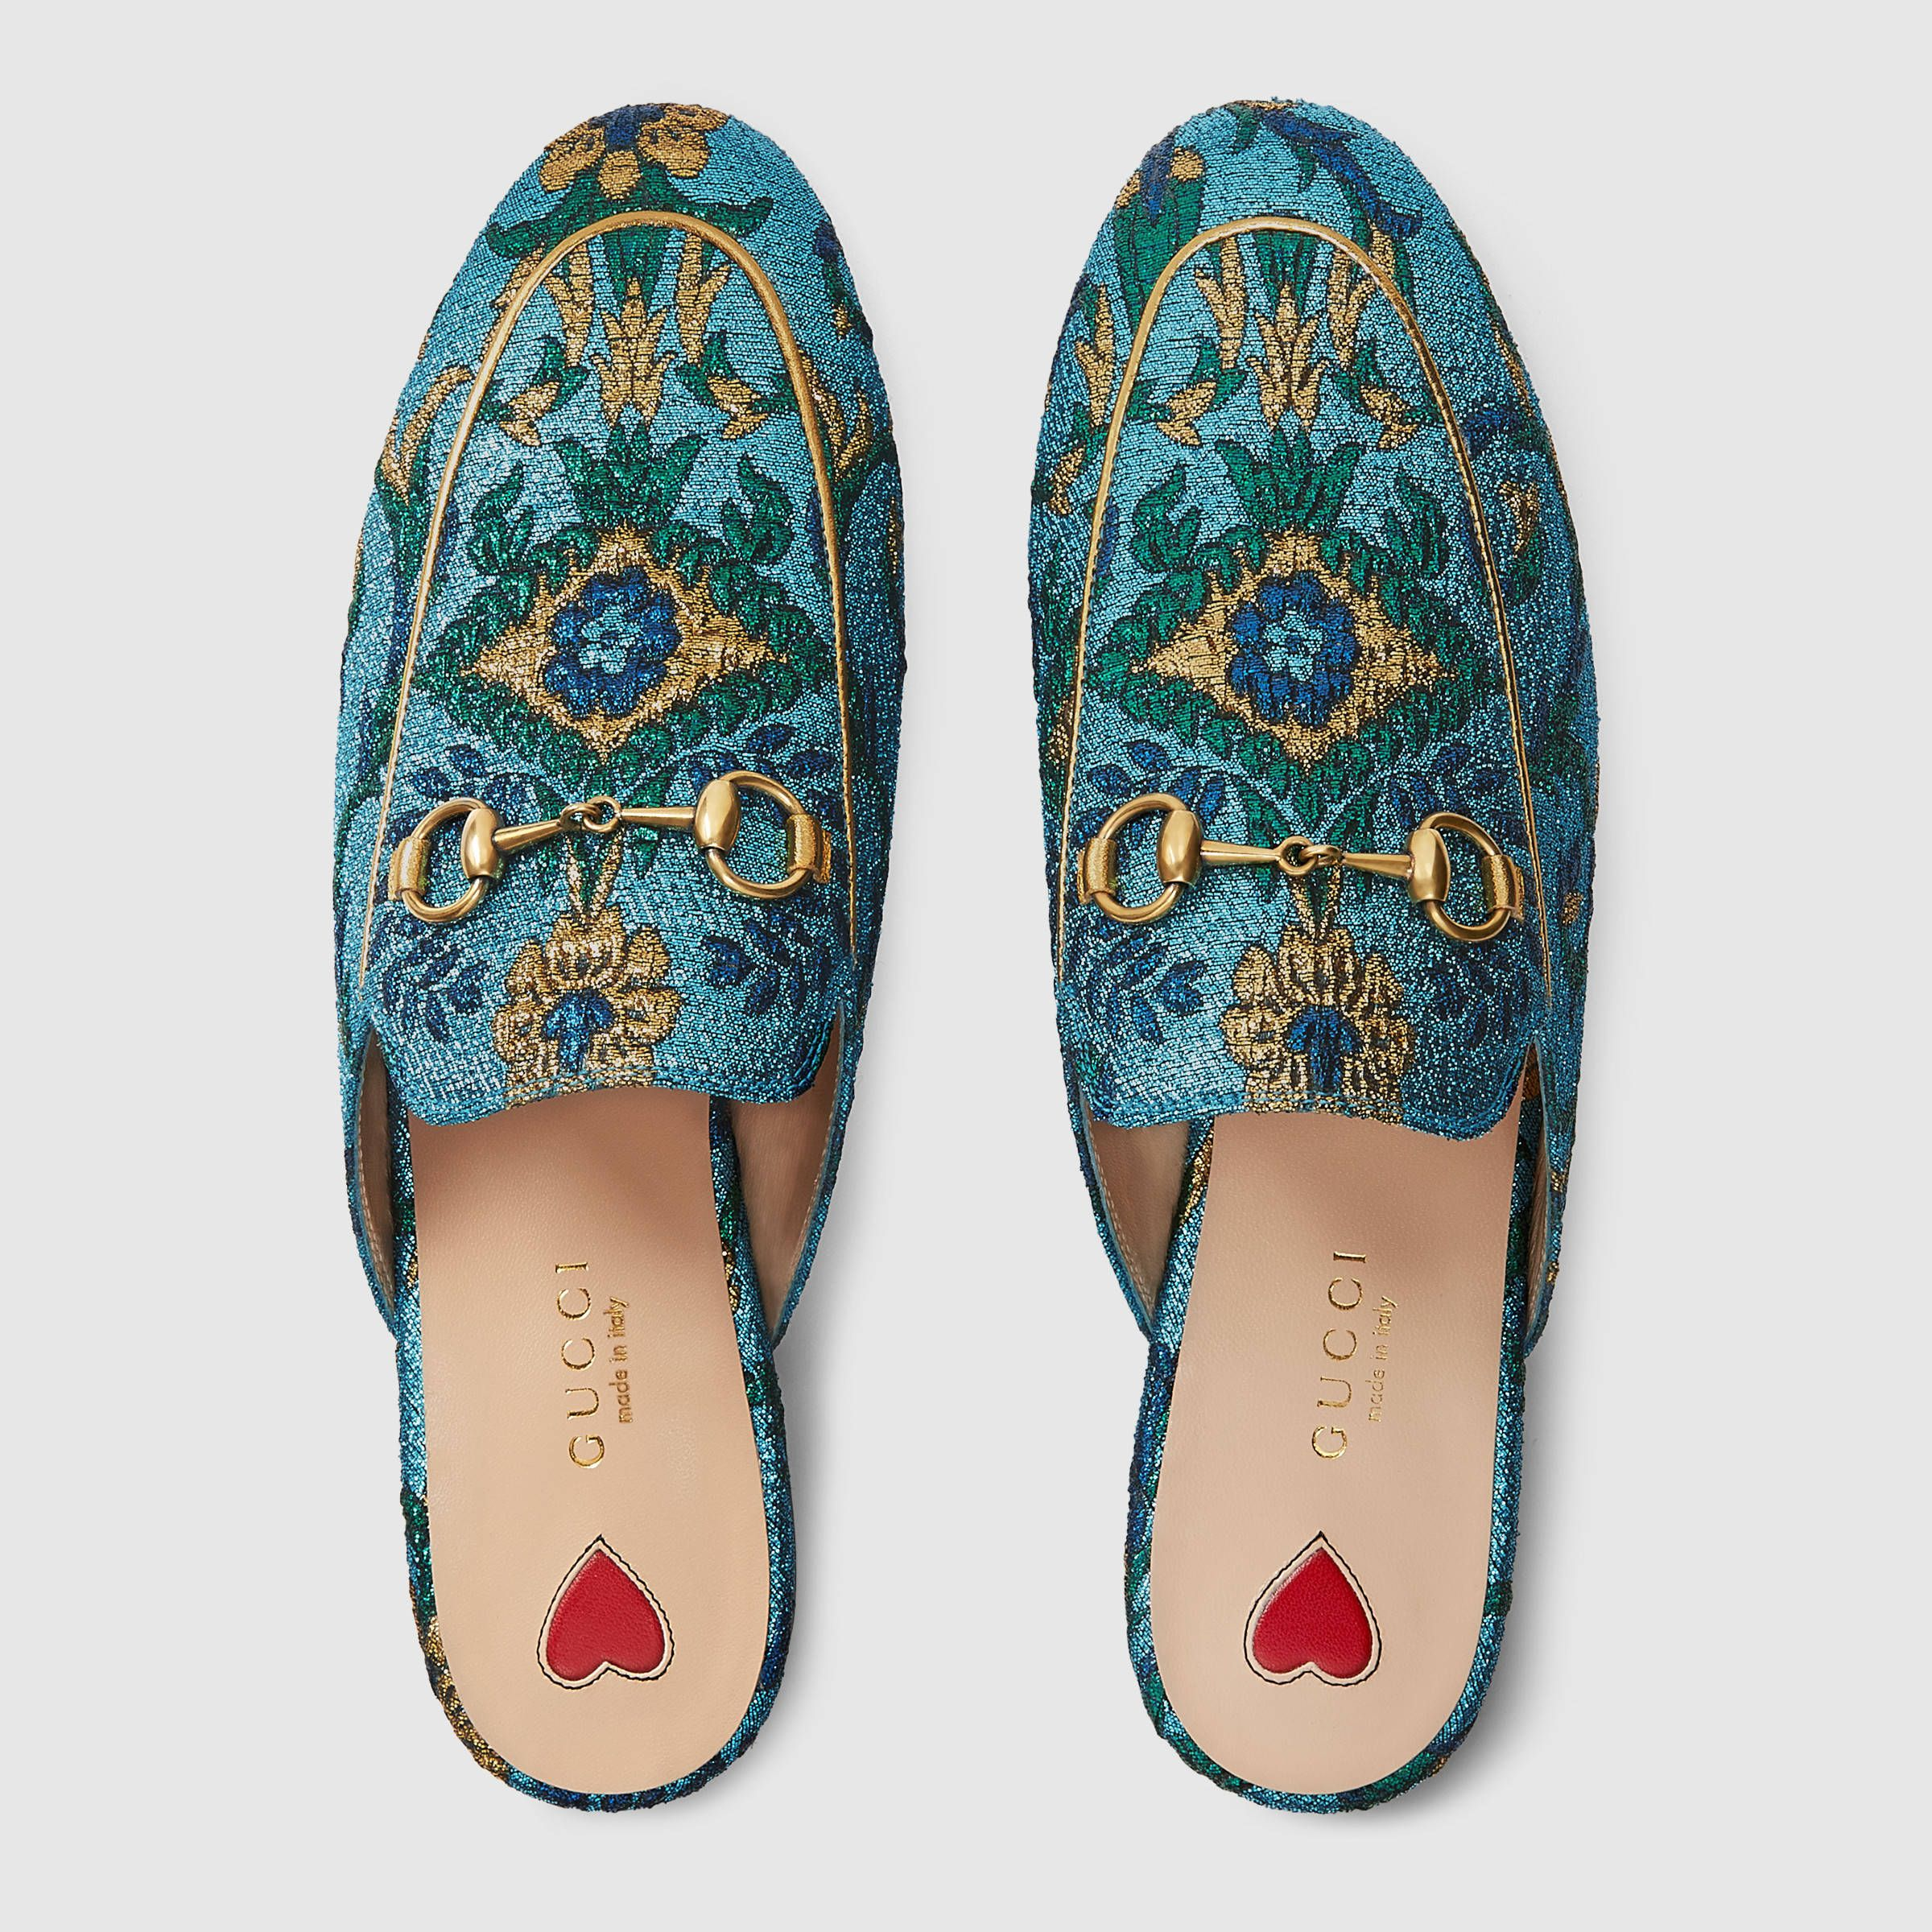 a6ef5aede5a Princetown brocade slipper - Gucci Women s Moccasins   Loafers  472640K9O204967